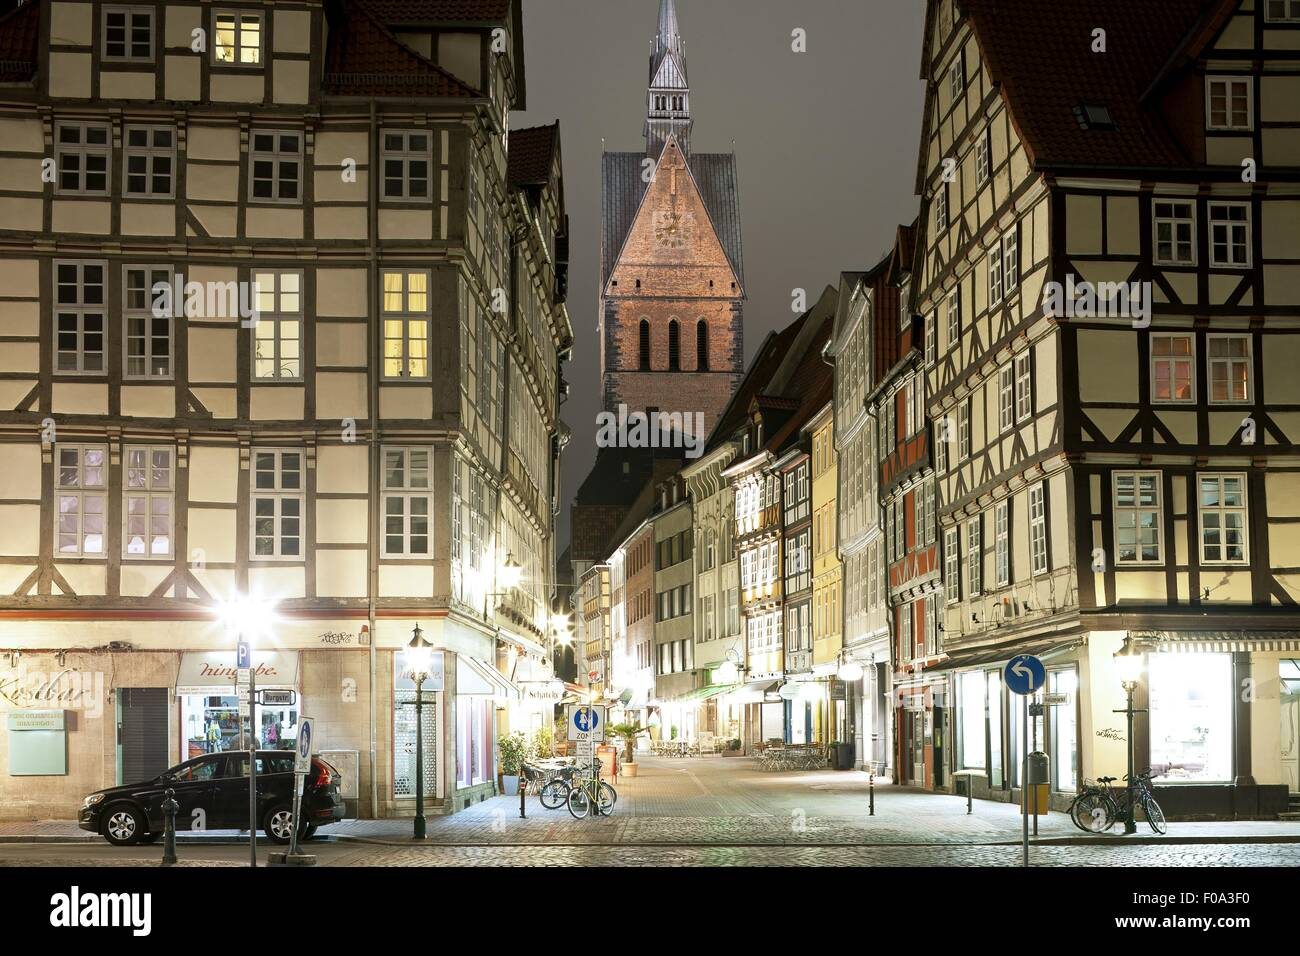 View of market church, half-timbered houses on Kramer Street, Hanover, Germany - Stock Image